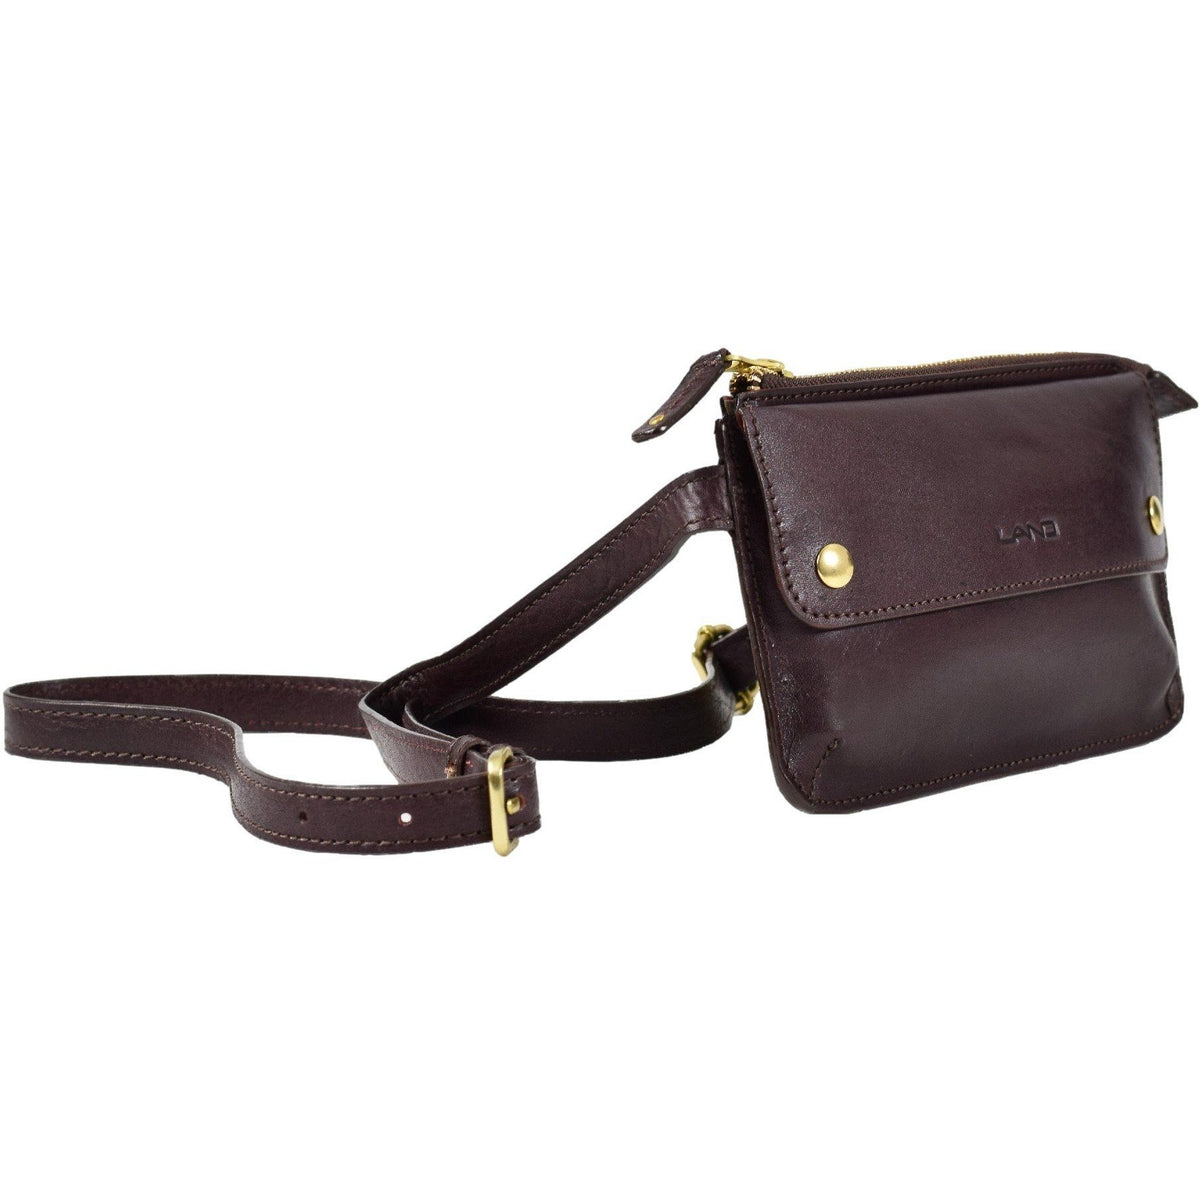 Limited Waist Bag, Fanny Pack | LAND Leather